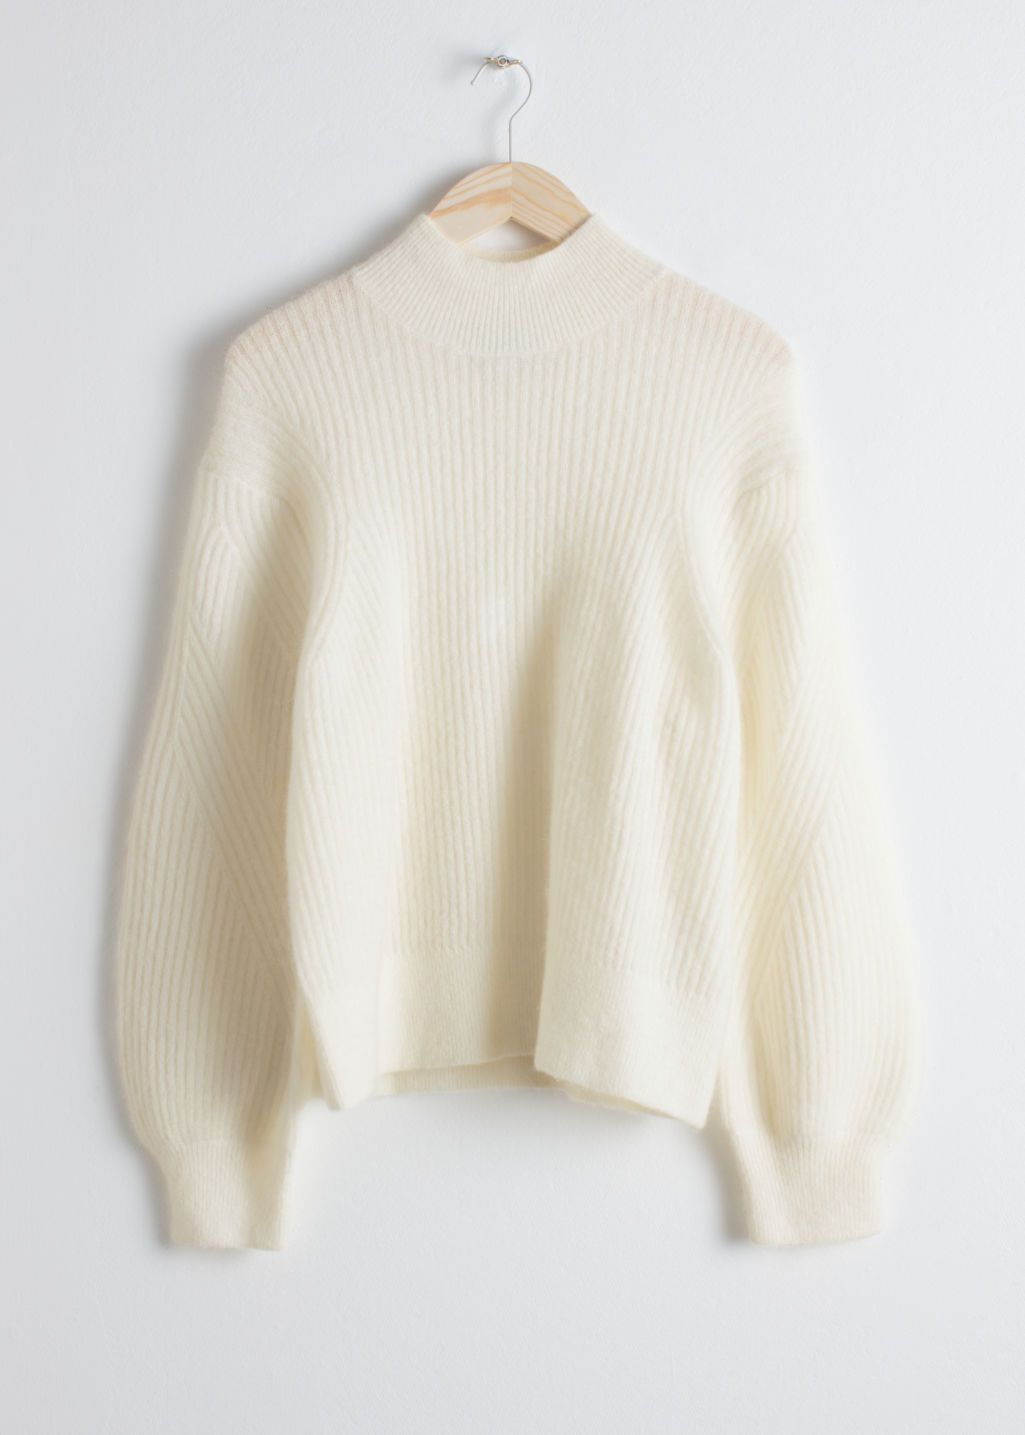 4e644604ad Wool Blend Cable Knit Sweater - Cream - Sweaters -   Other Stories